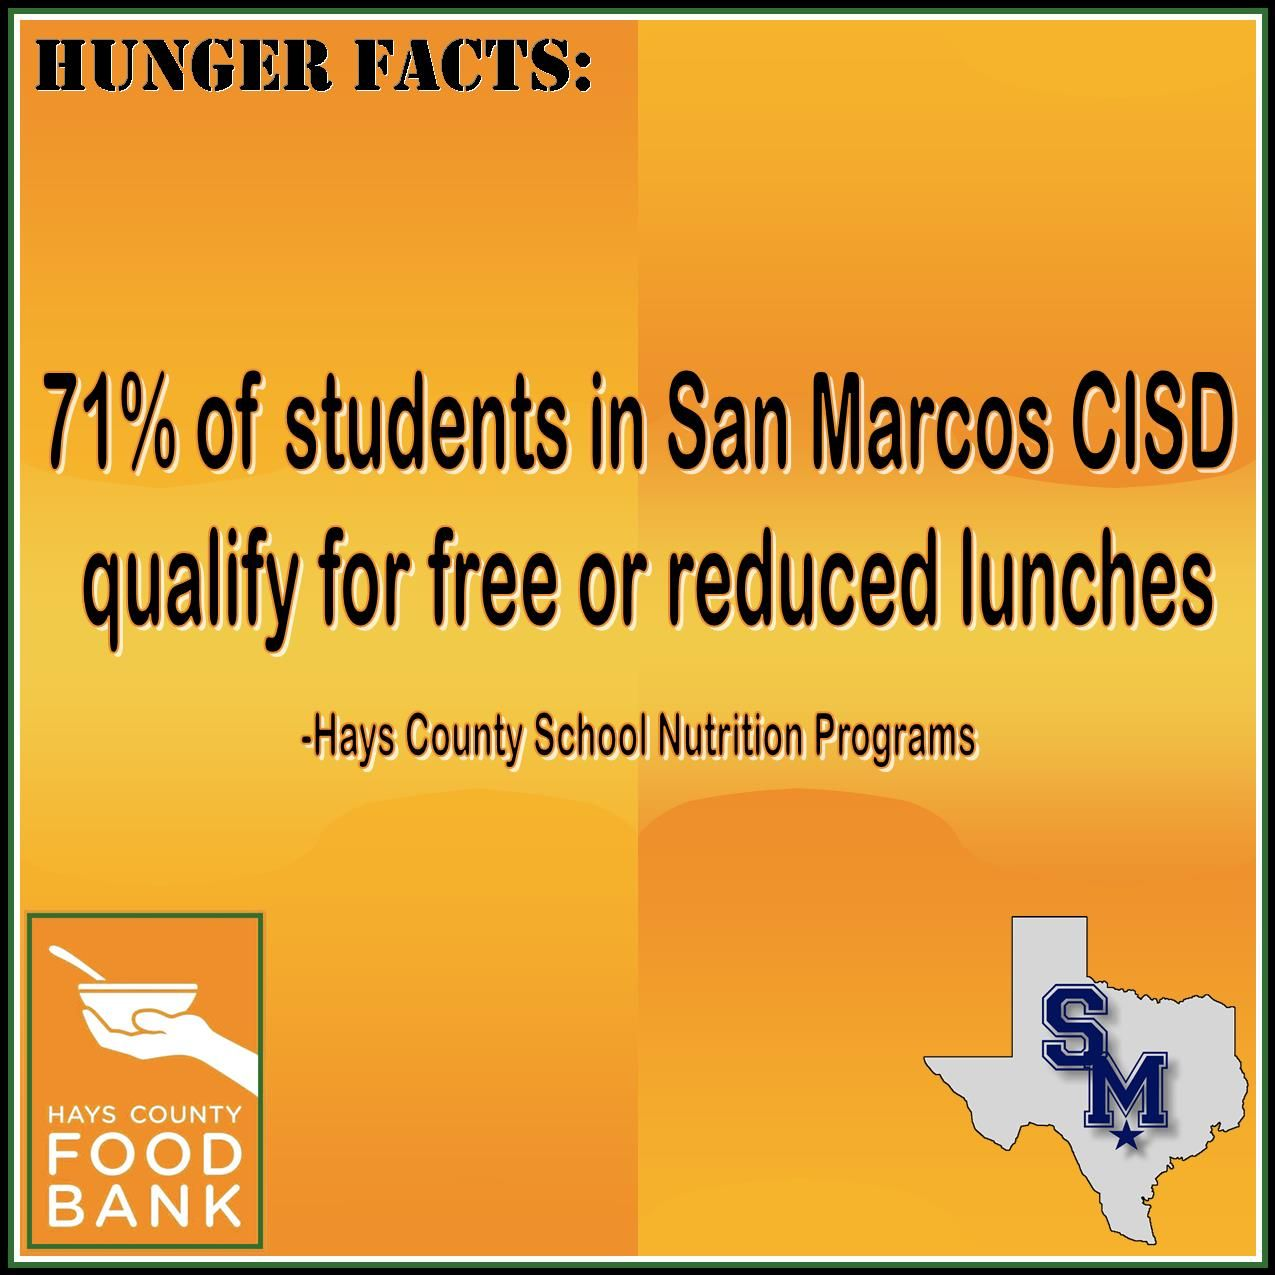 San marcos school districts have a high percentage of